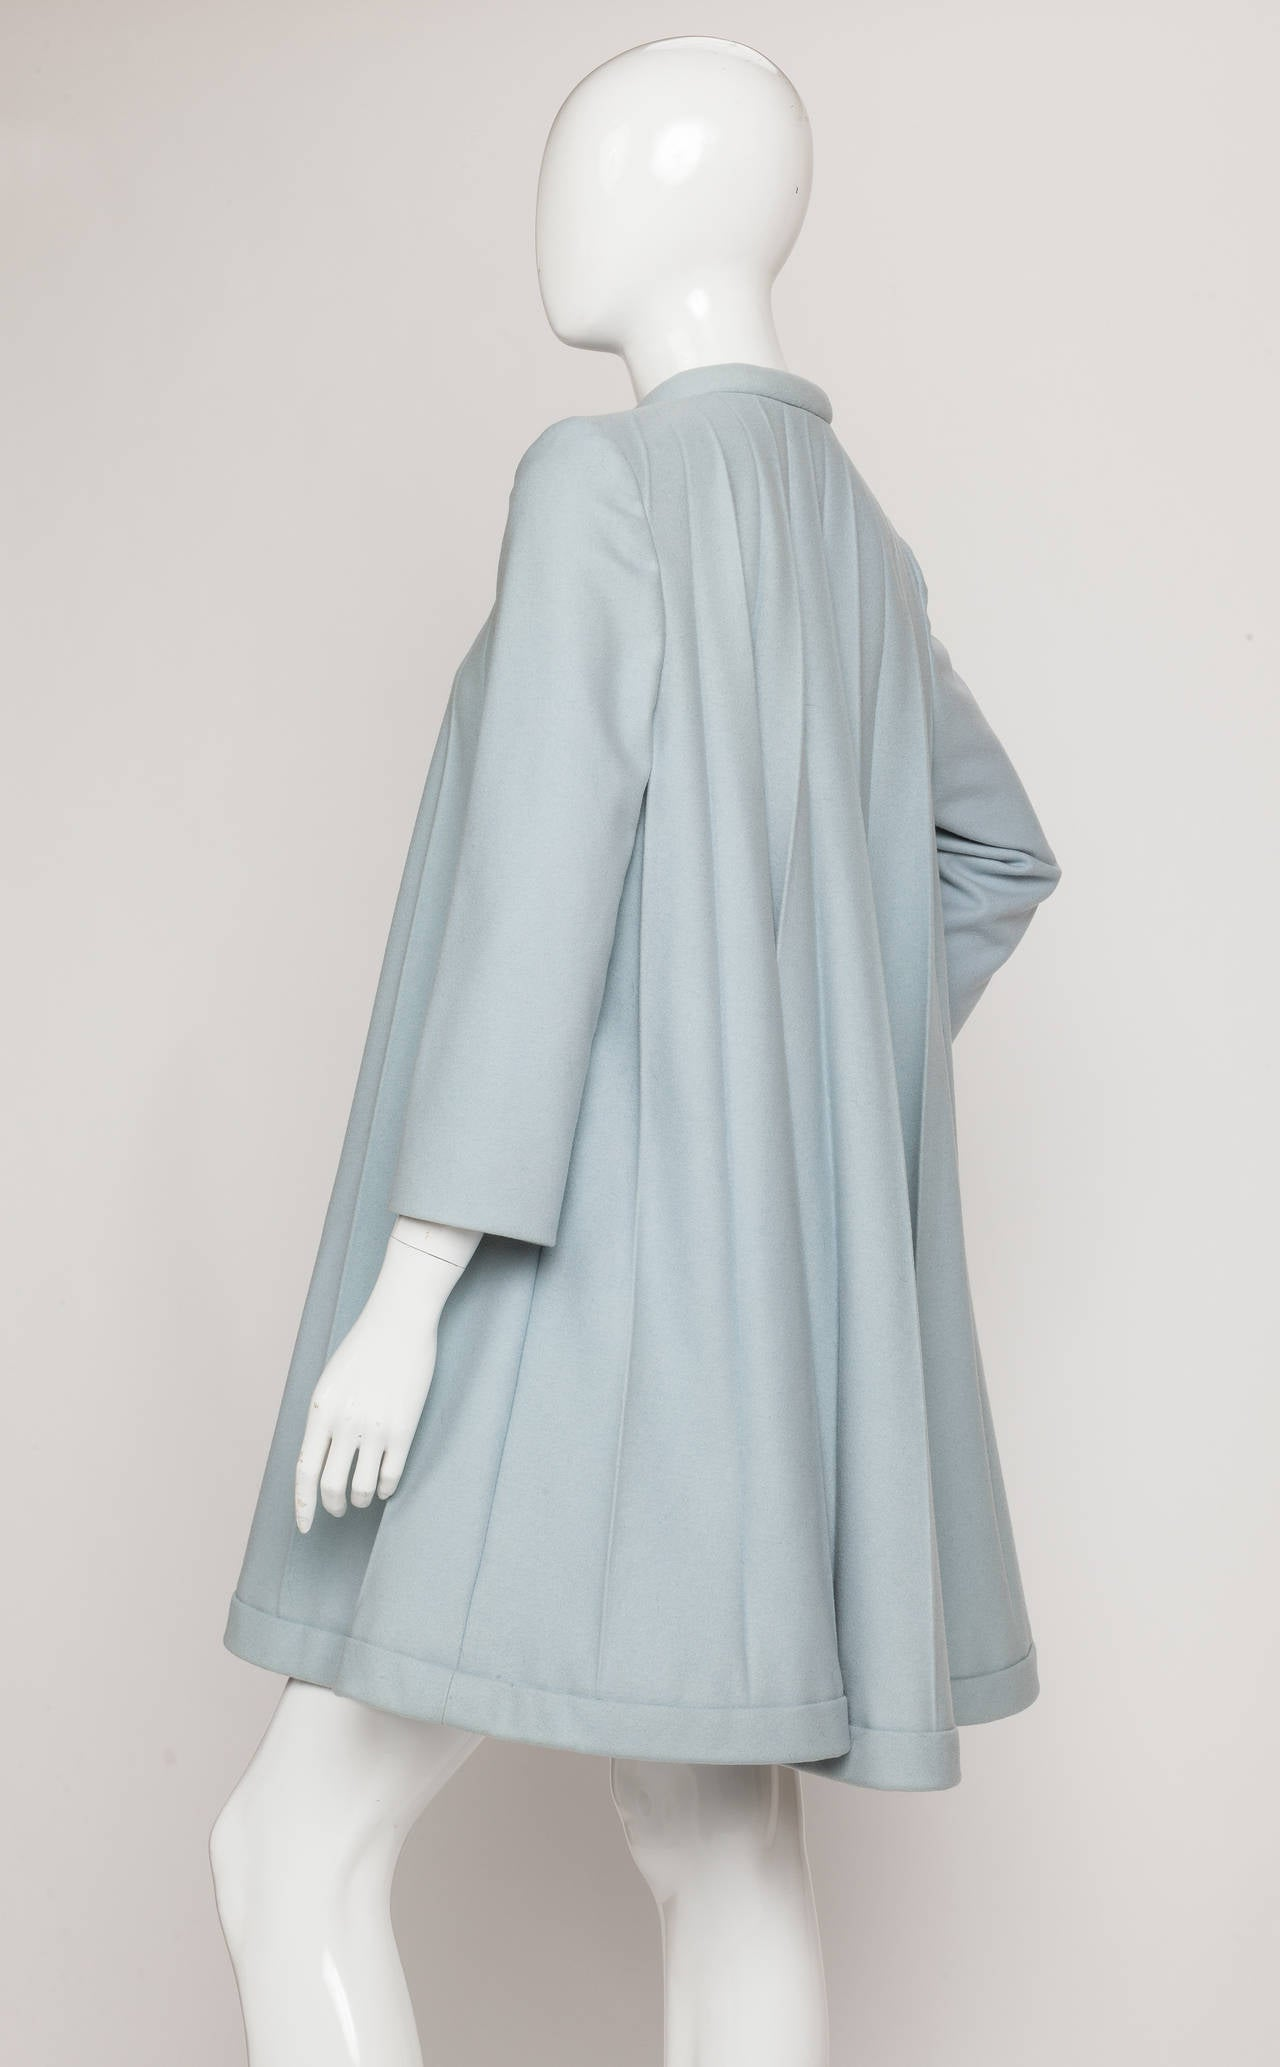 1967 Rare Iconic Pierre Cardin Wool Trapeze Accordian Pleat Coat Dress In Good Condition For Sale In Los Angeles, CA